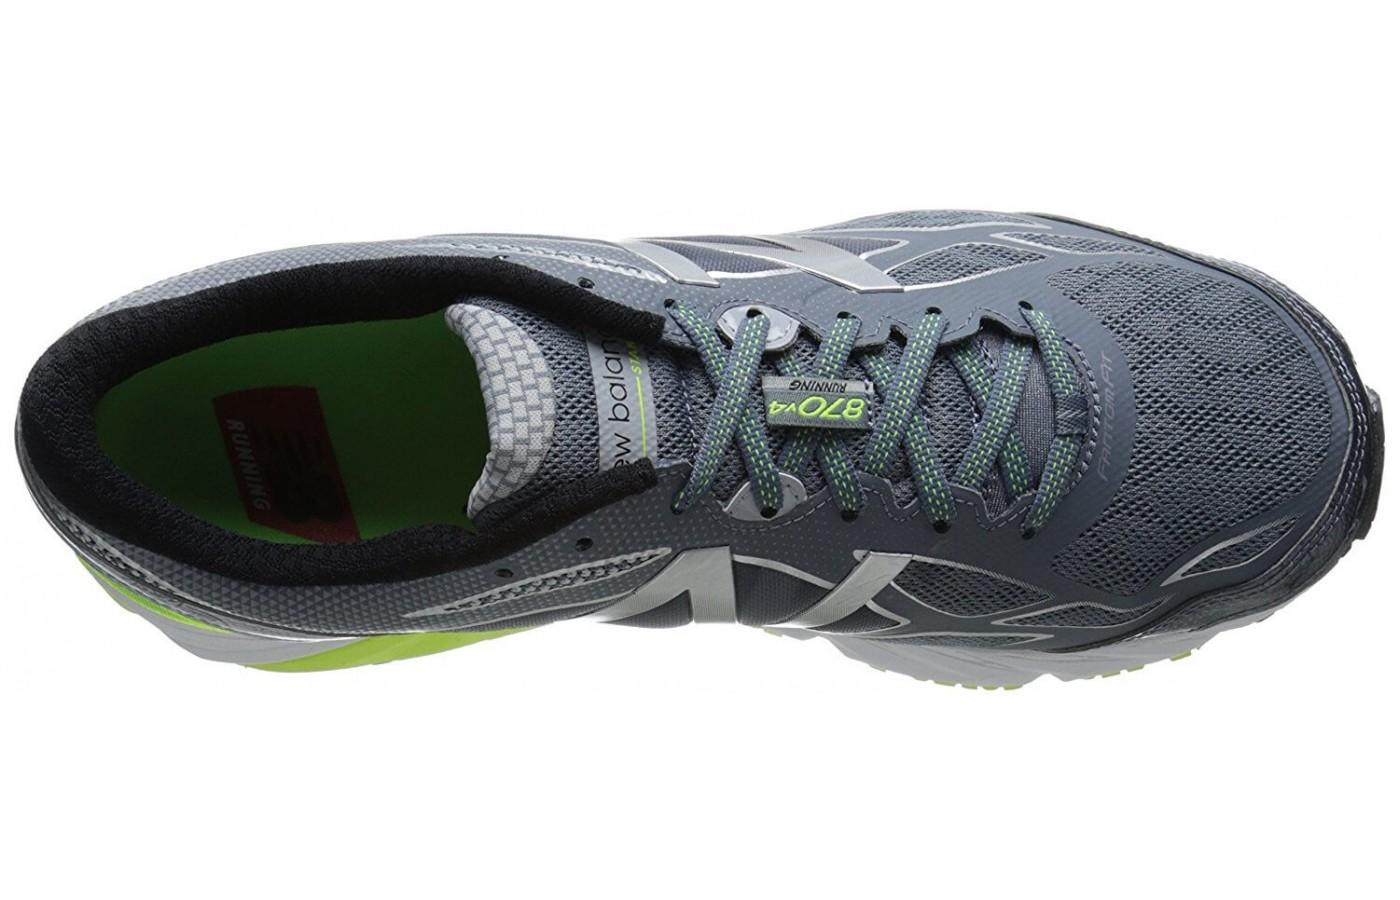 the 870 v4 has a breathable mesh upper